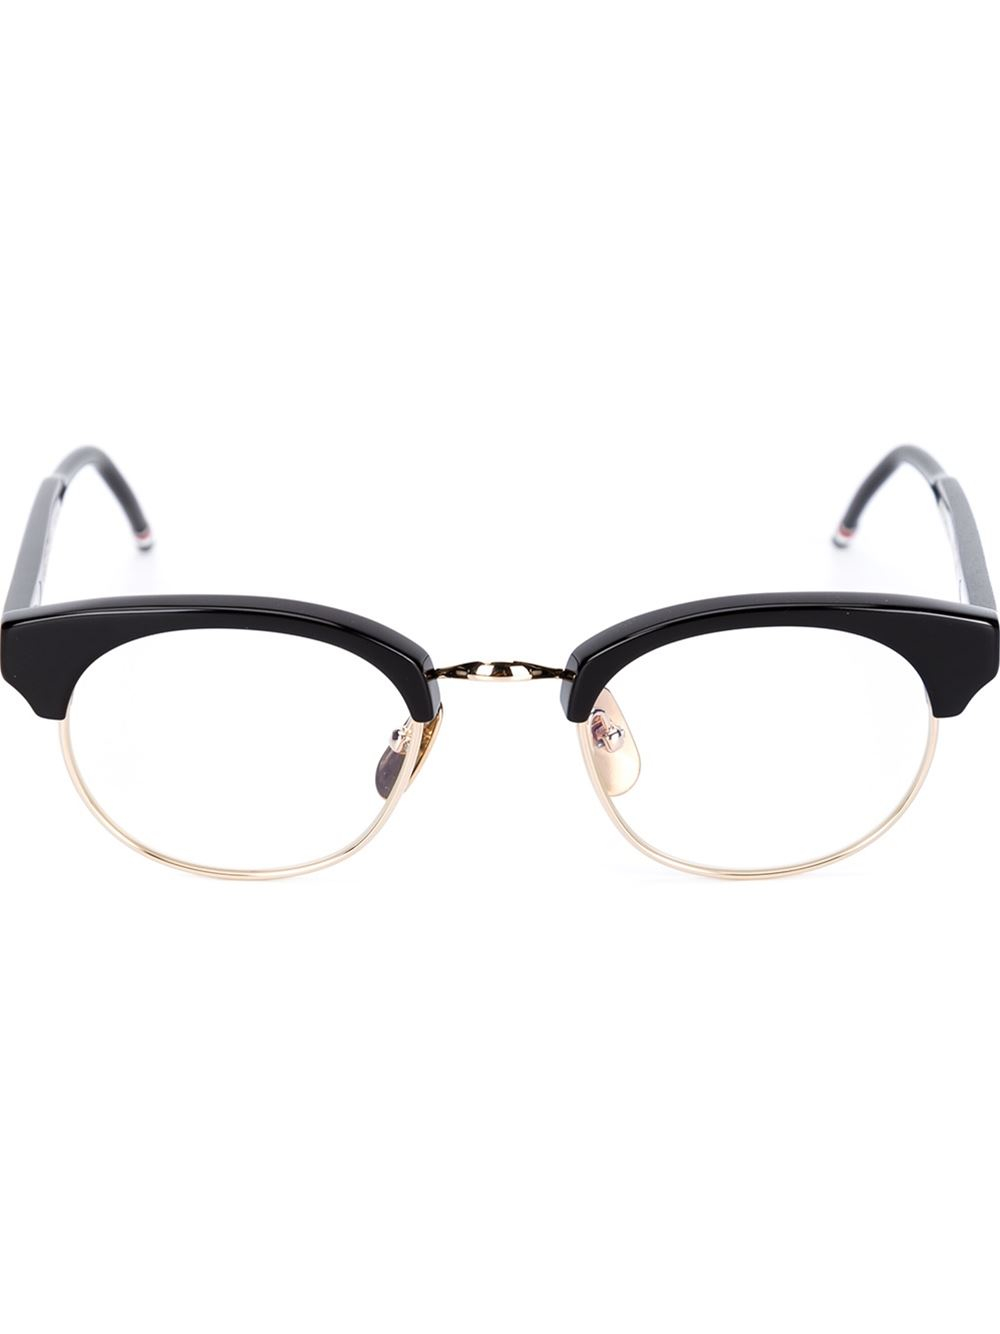 Thom Browne Half Frame Glasses in Black for Men Lyst